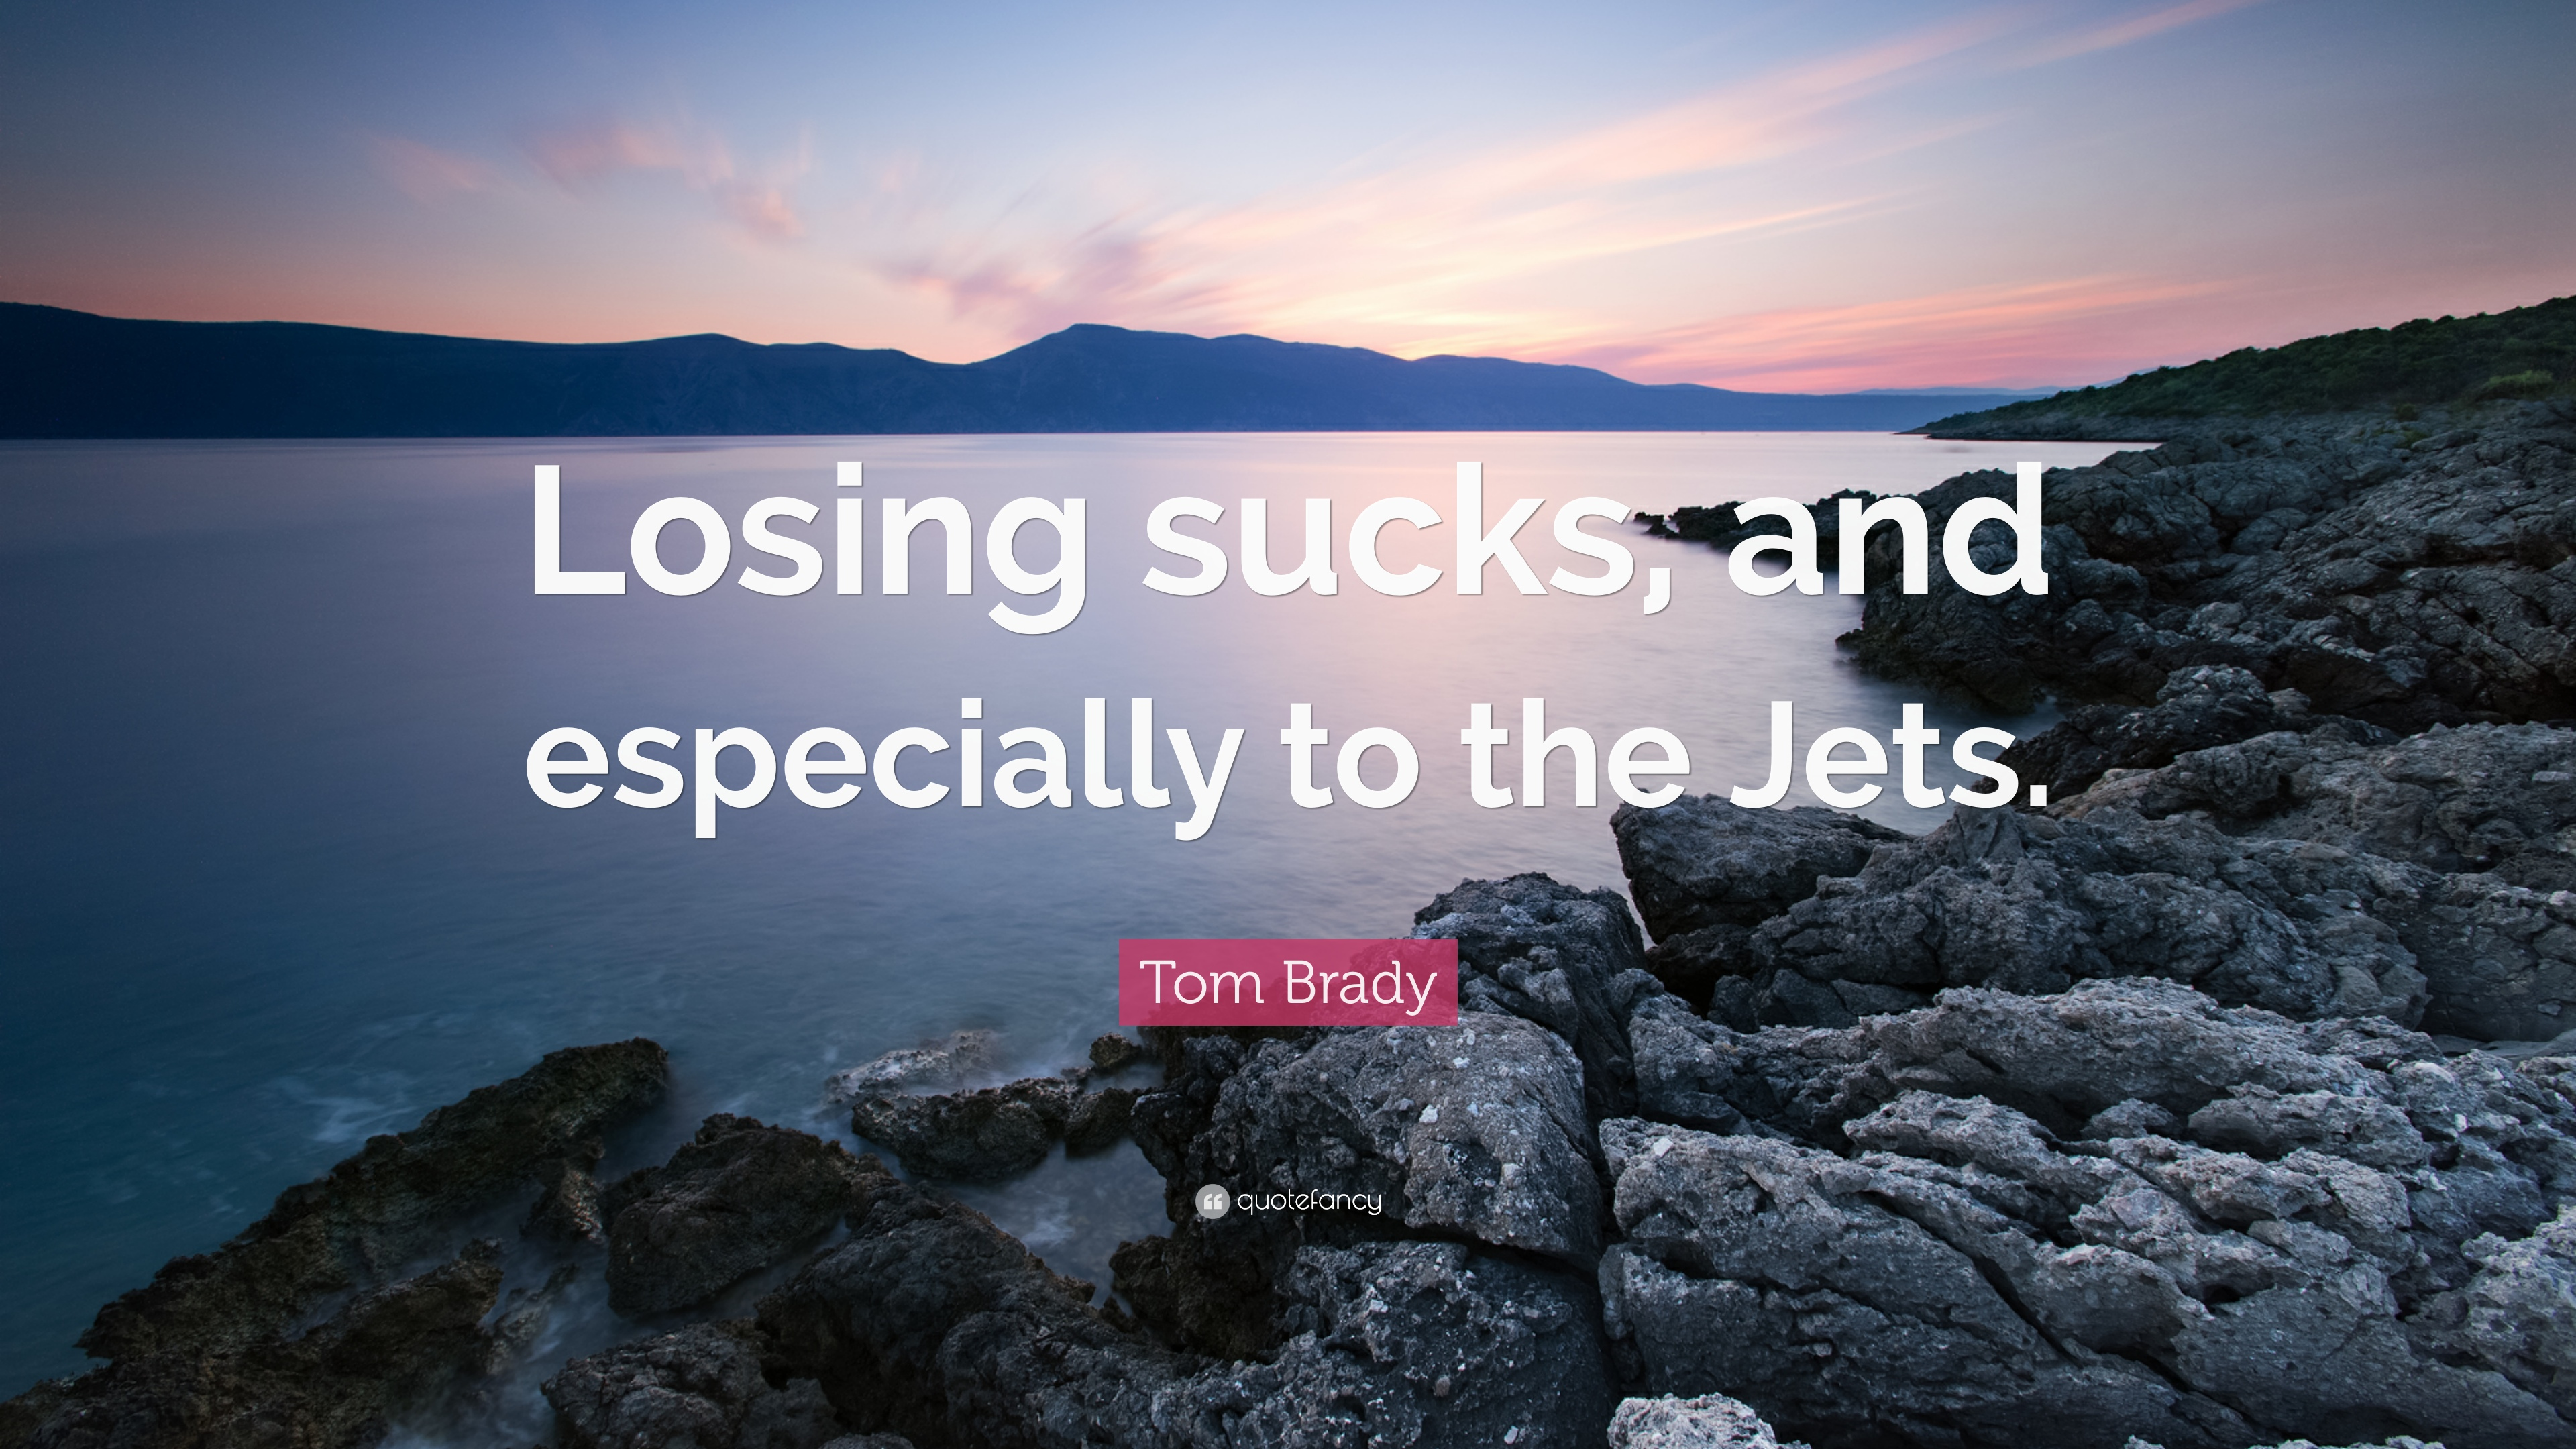 Quotes About Losing | Tom Brady Quote Losing Sucks And Especially To The Jets 7